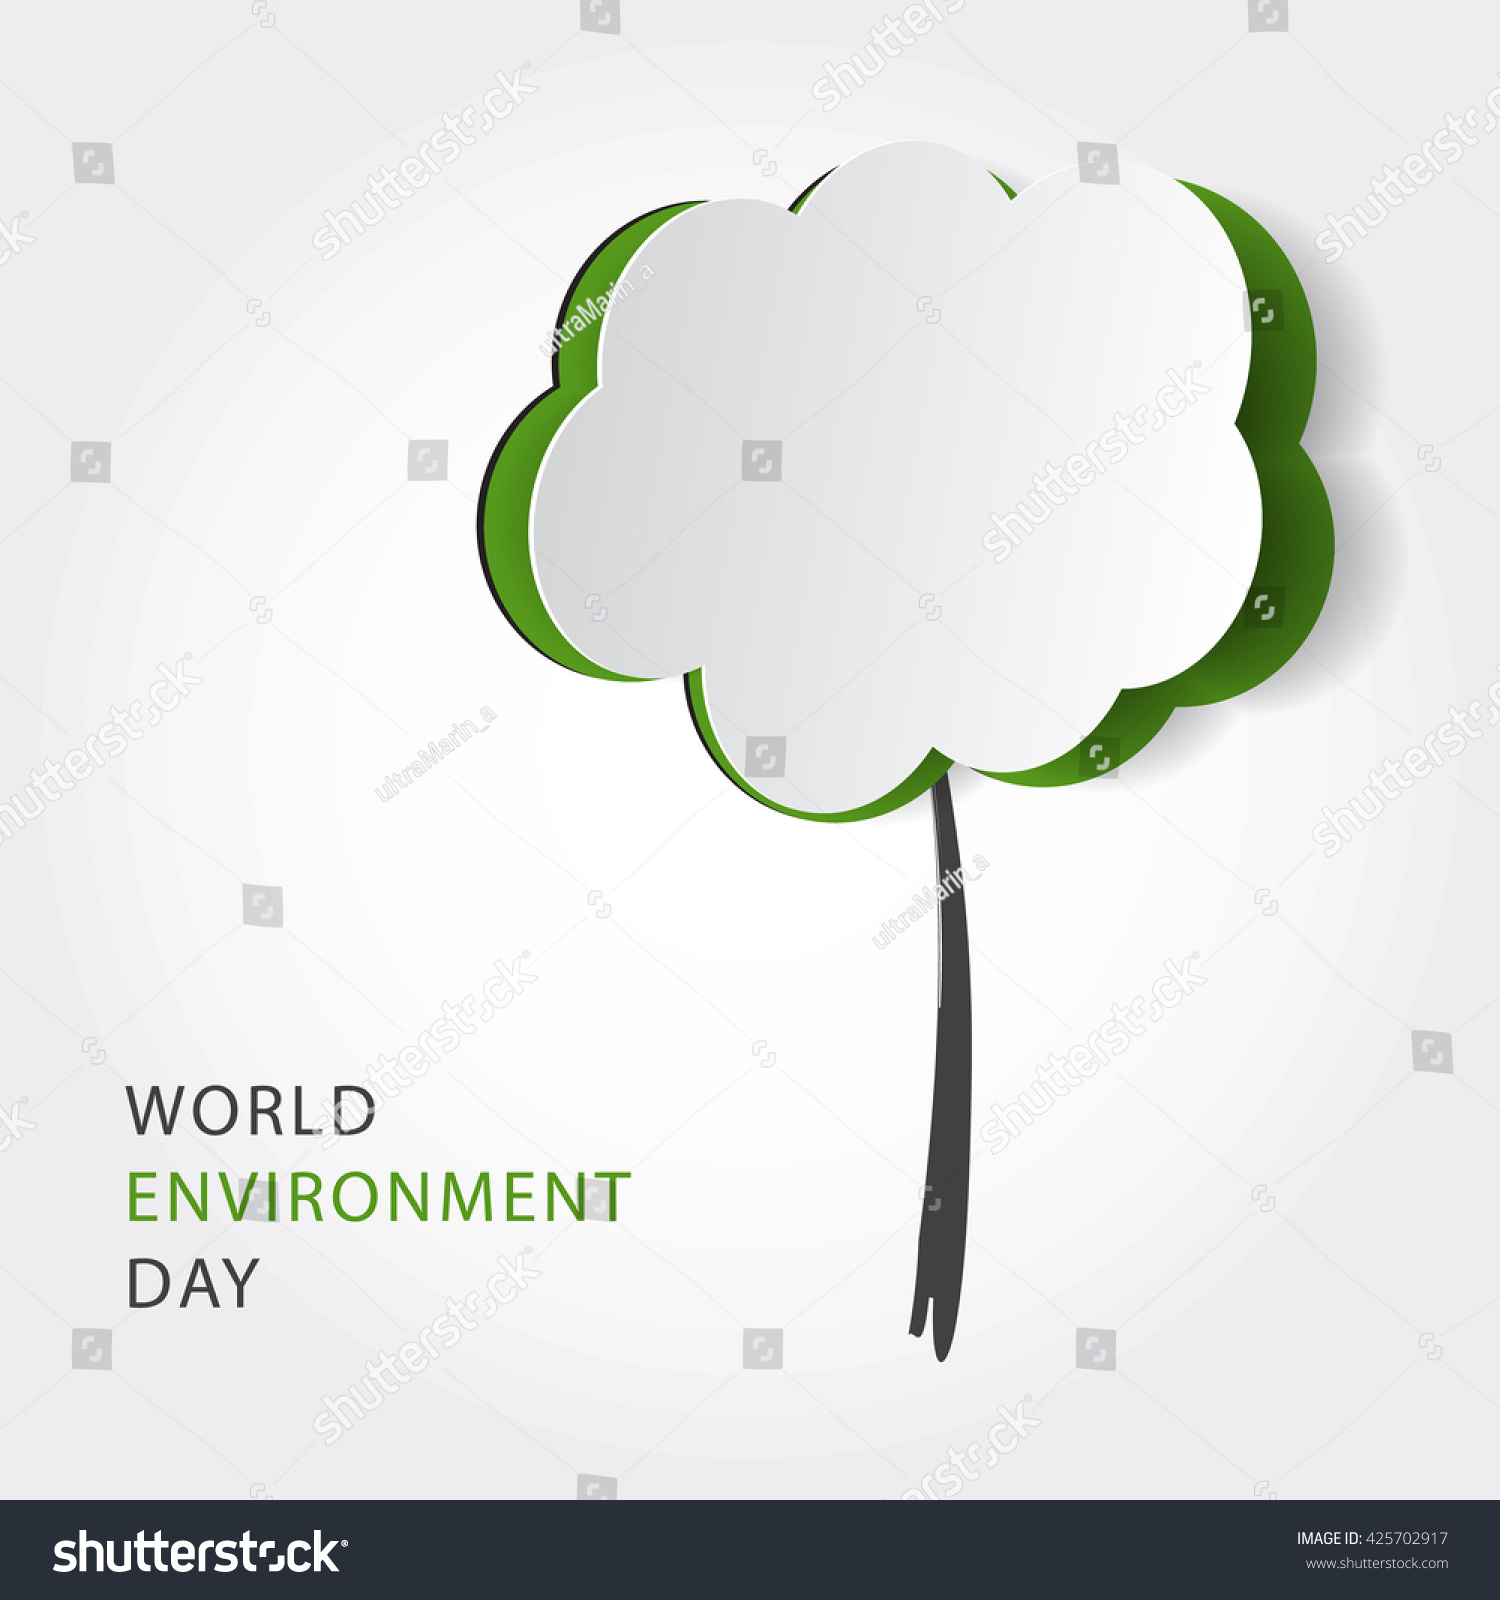 be environmentally friendly essay Environmentally friendly essayswhenever we go for a walk through the streets of a big city we notice at once how dirty they are litter, scraps of paper, cans, bottles and plastic containers.